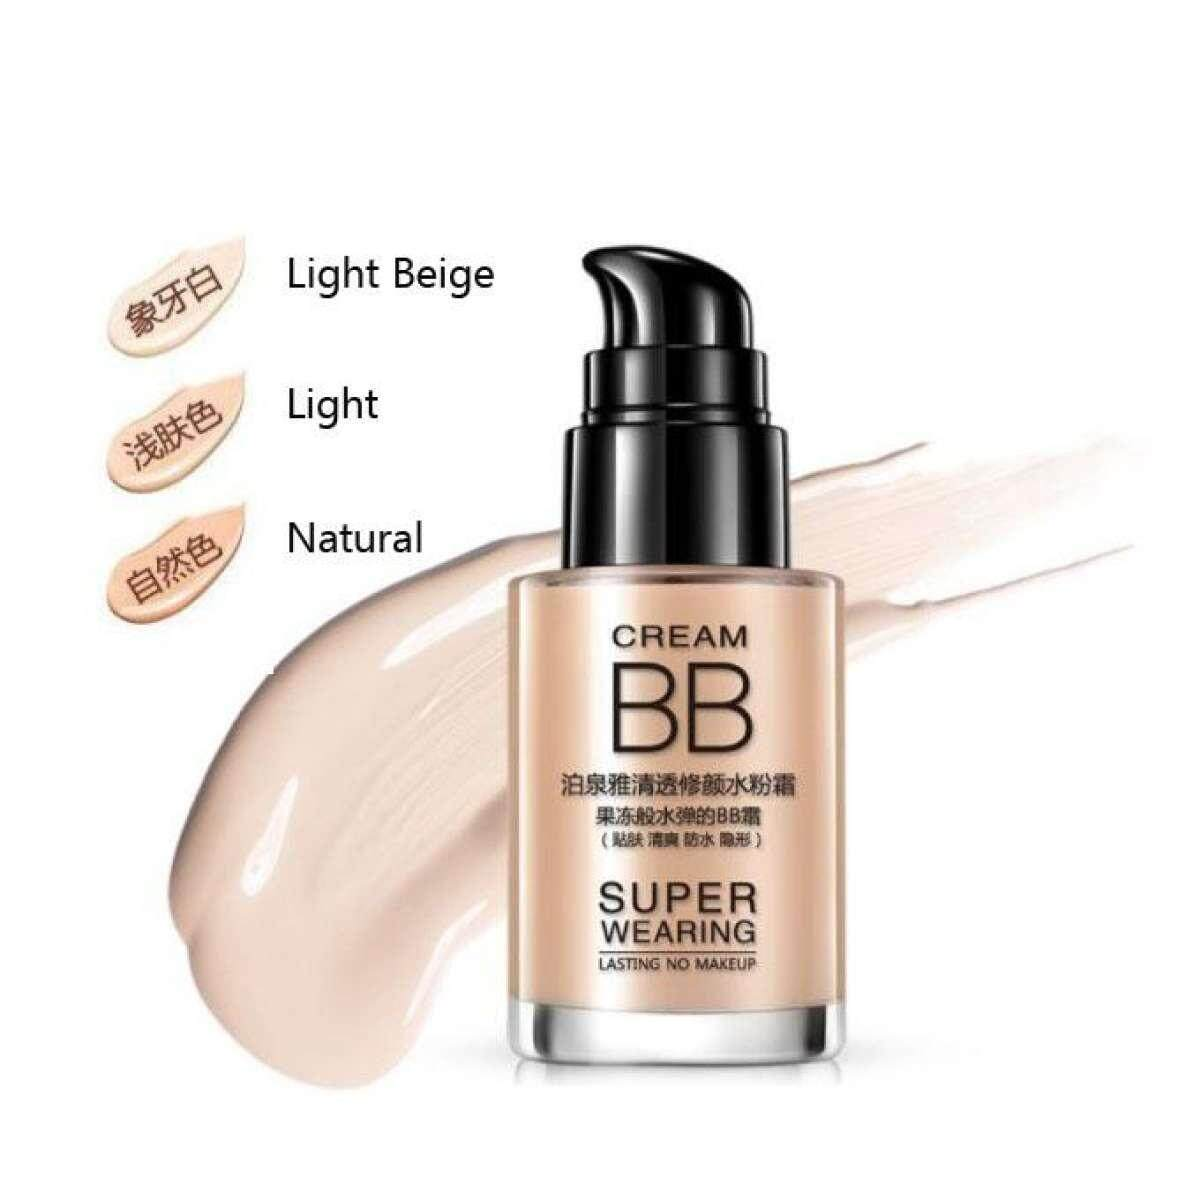 Bioaqua Persistent Bb Cream Foundation Whitening And Moisturizing Concealer Invisible Pores Easy On Makeup - Light Beige/ivory/natural By Fly Automart.